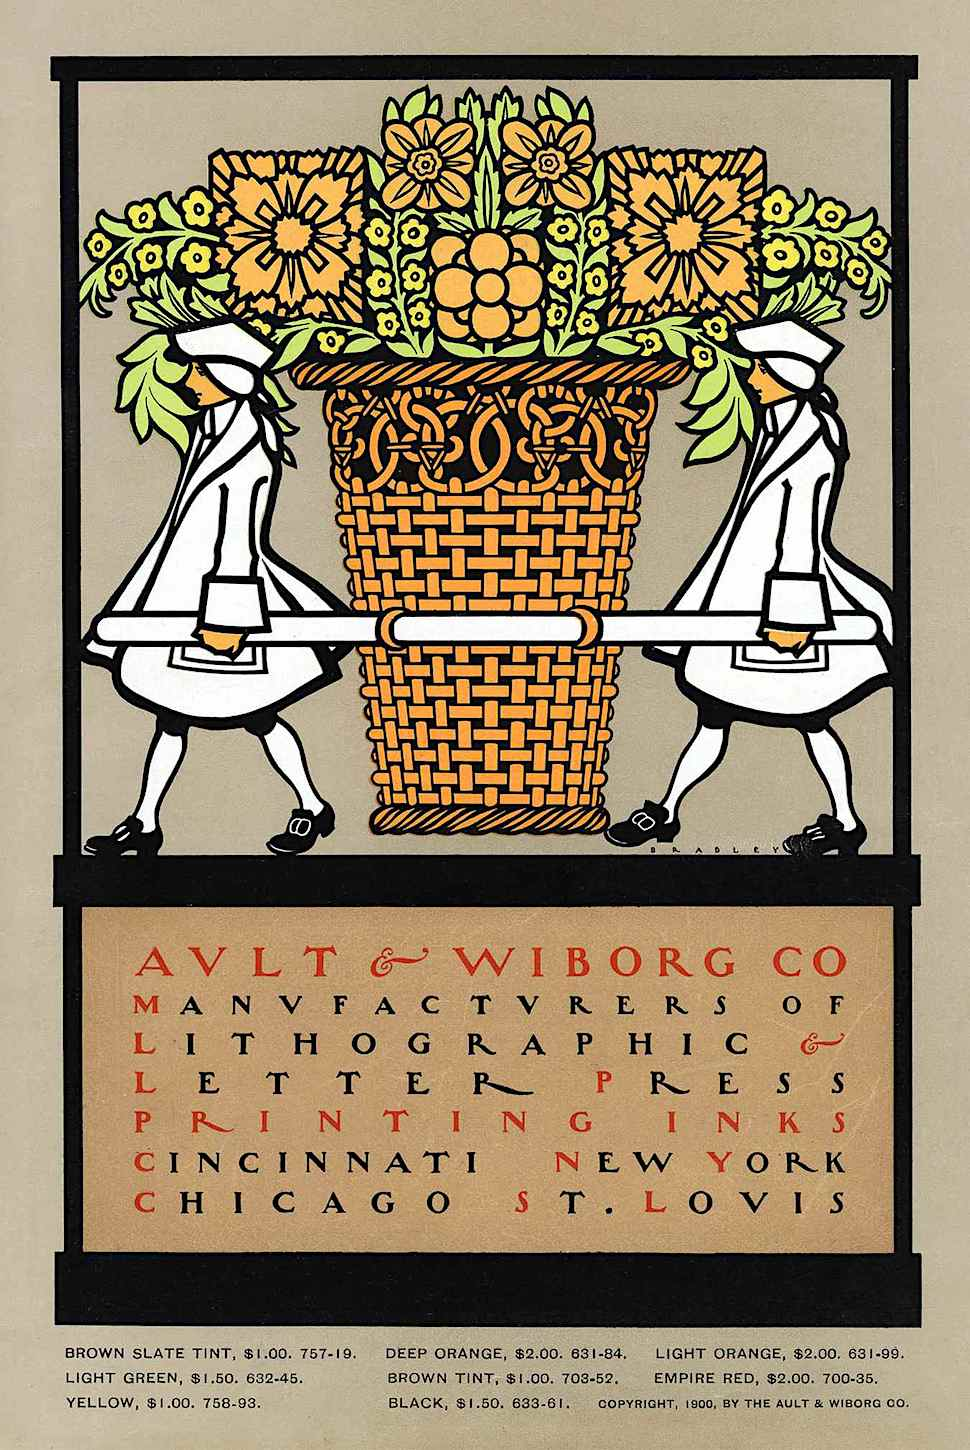 an old advertisement for printing inks illustrated by Will Bradley for Ault & Wiborg Co.